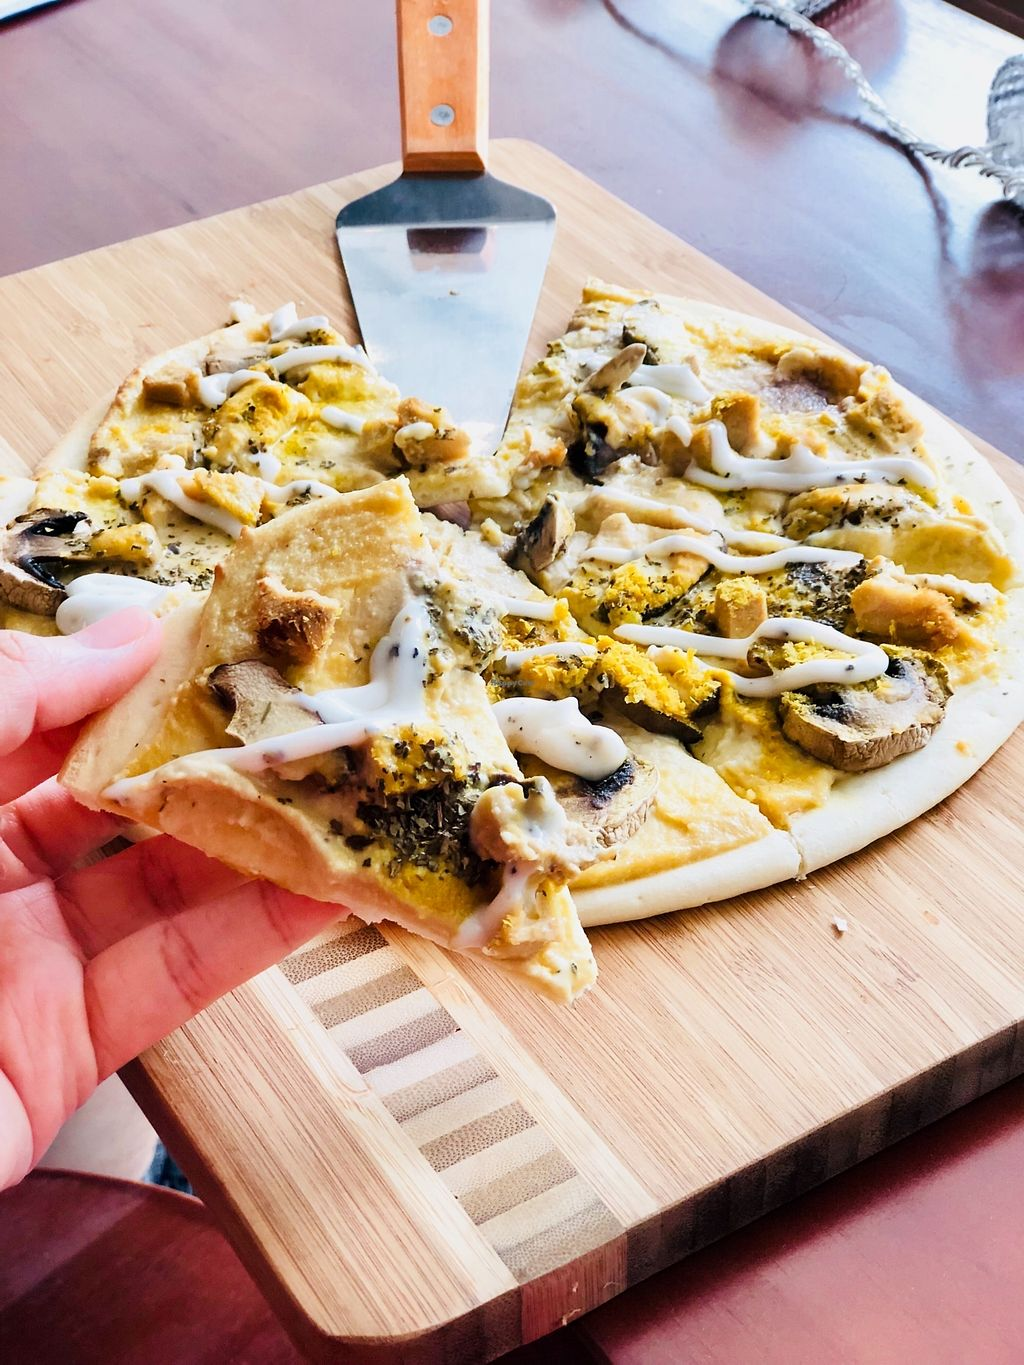 "Photo of Cozy Corner  by <a href=""/members/profile/CherylQuincy"">CherylQuincy</a> <br/>King truffle mushroom pizza <br/> February 9, 2018  - <a href='/contact/abuse/image/107367/356915'>Report</a>"